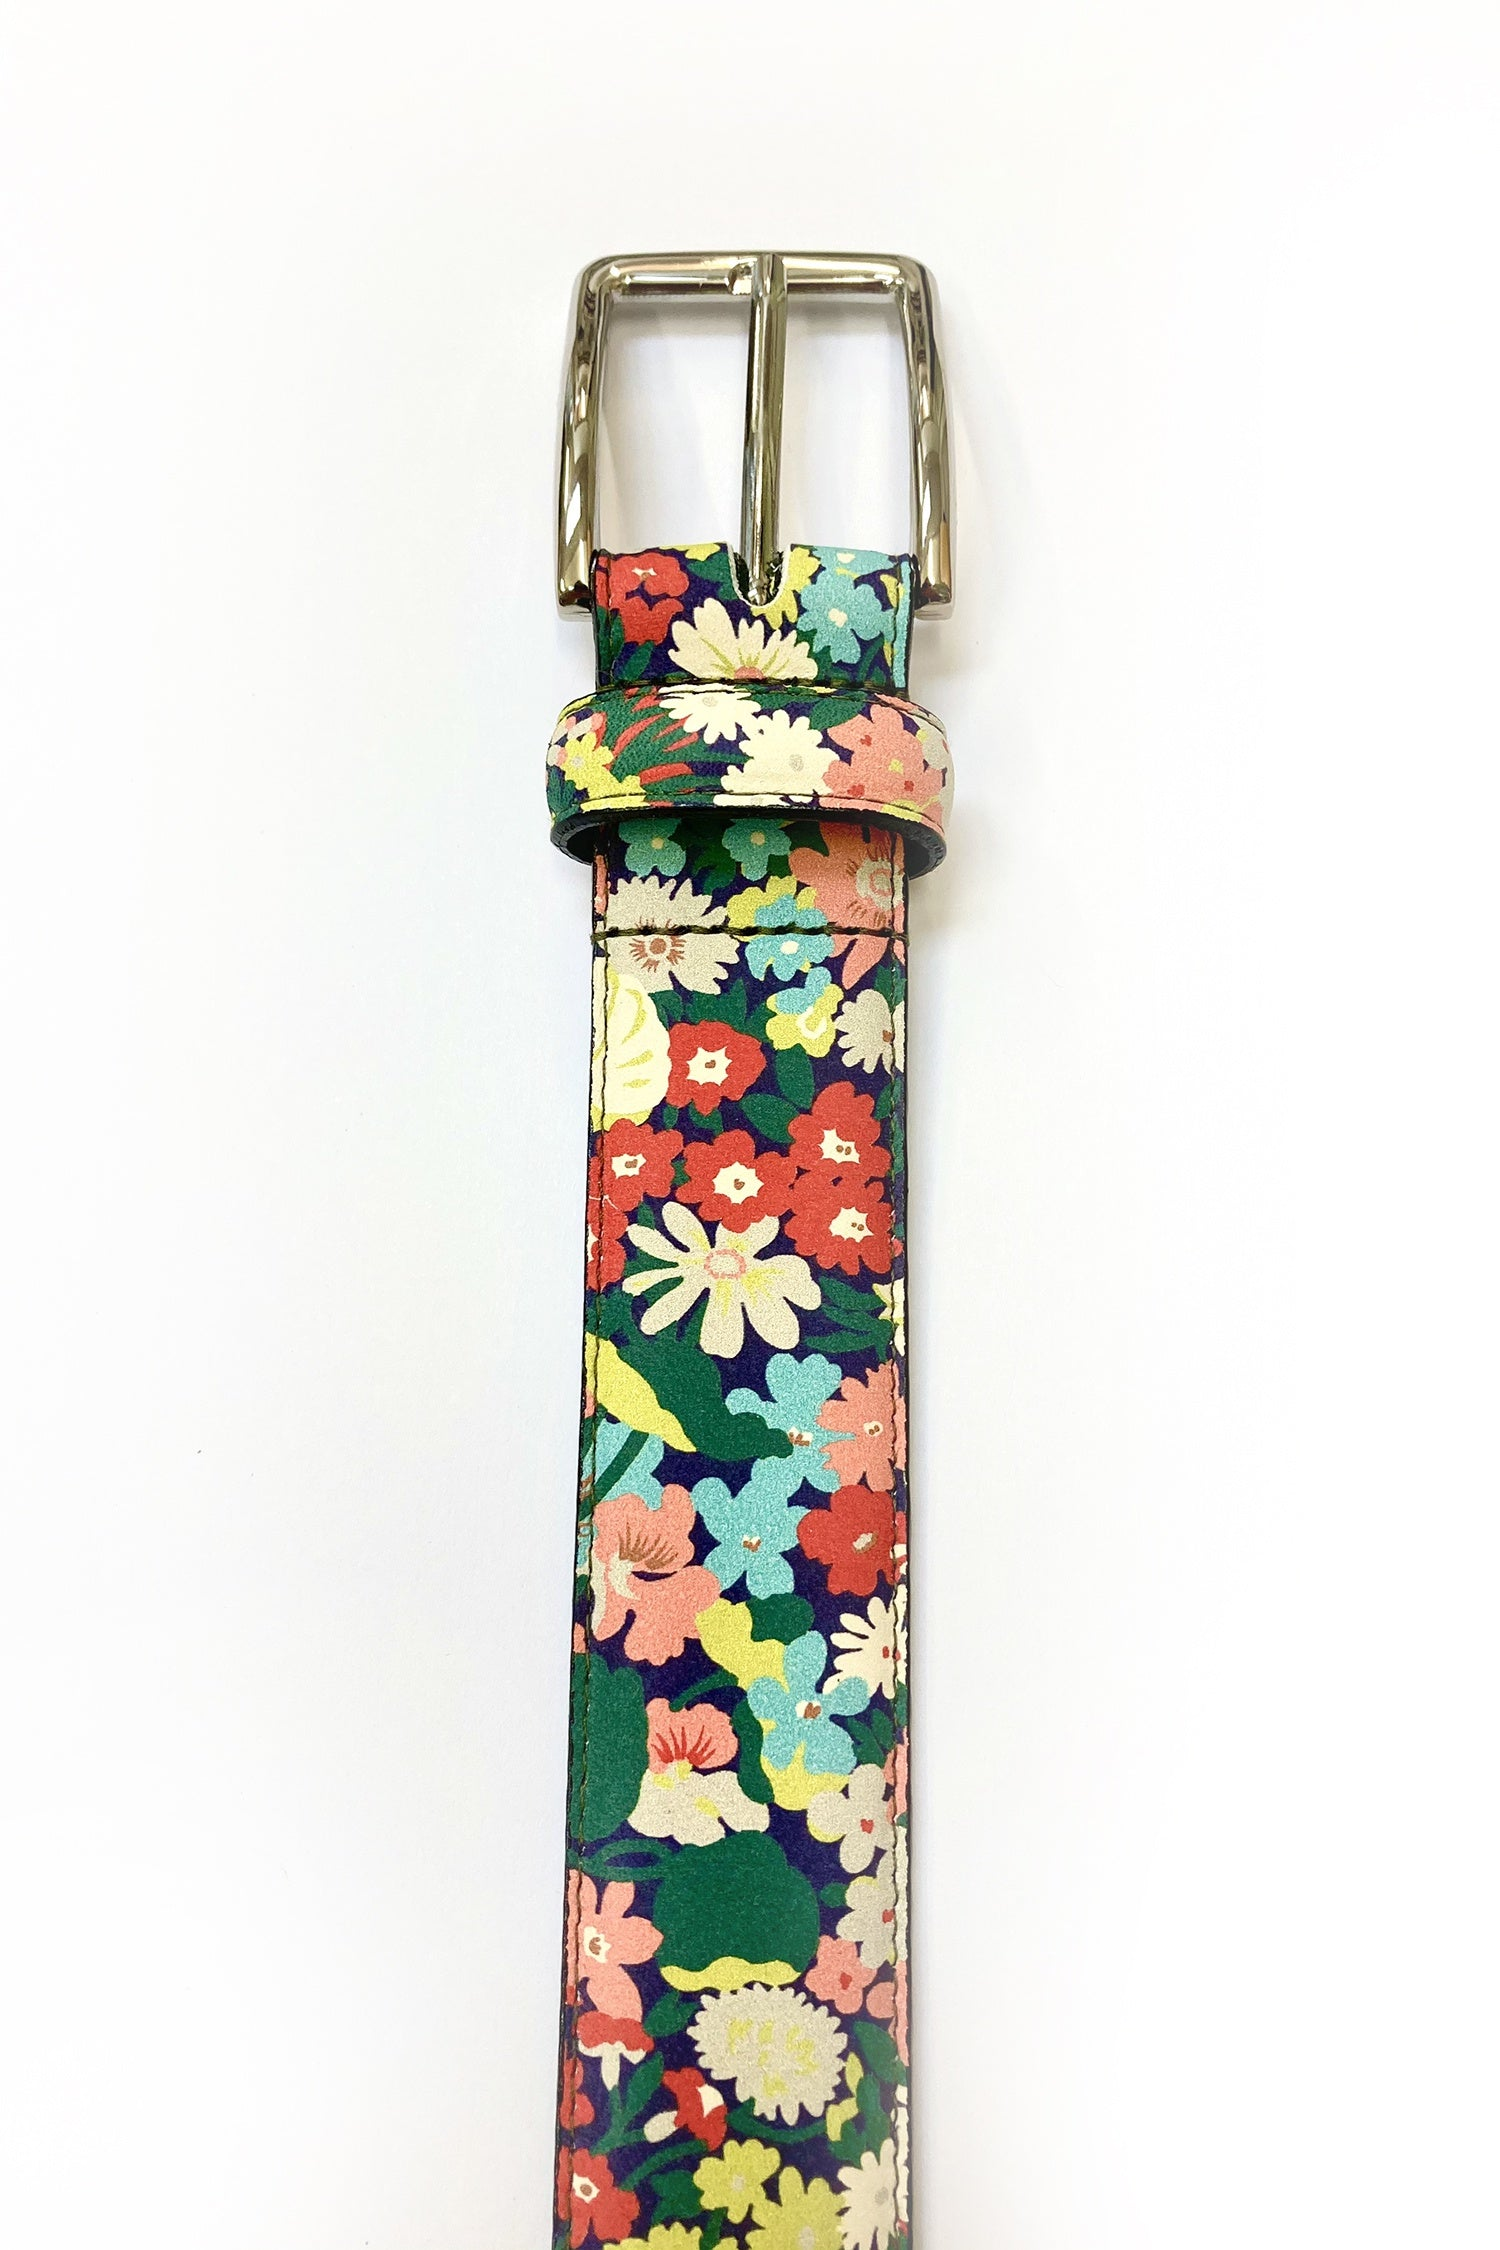 WORLD Liberty Leather Belt - Happy Floral